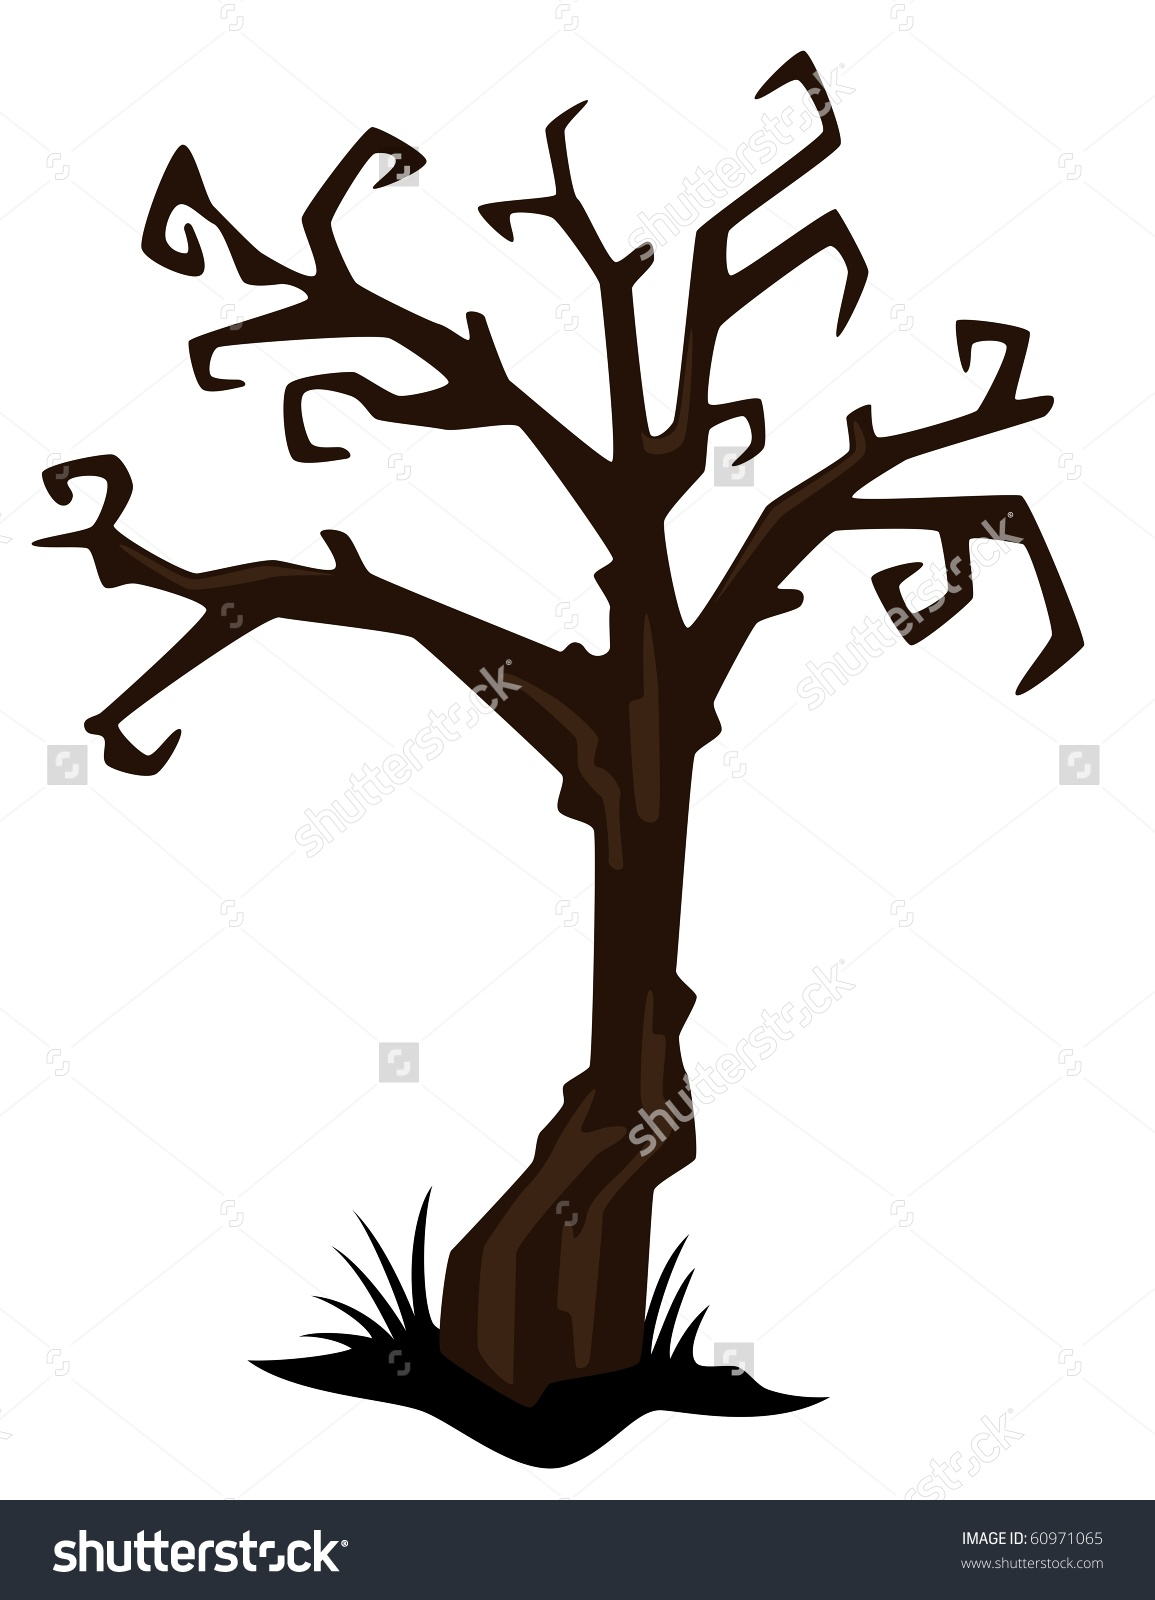 1155x1600 halloween gnarled trees silhouette clipart